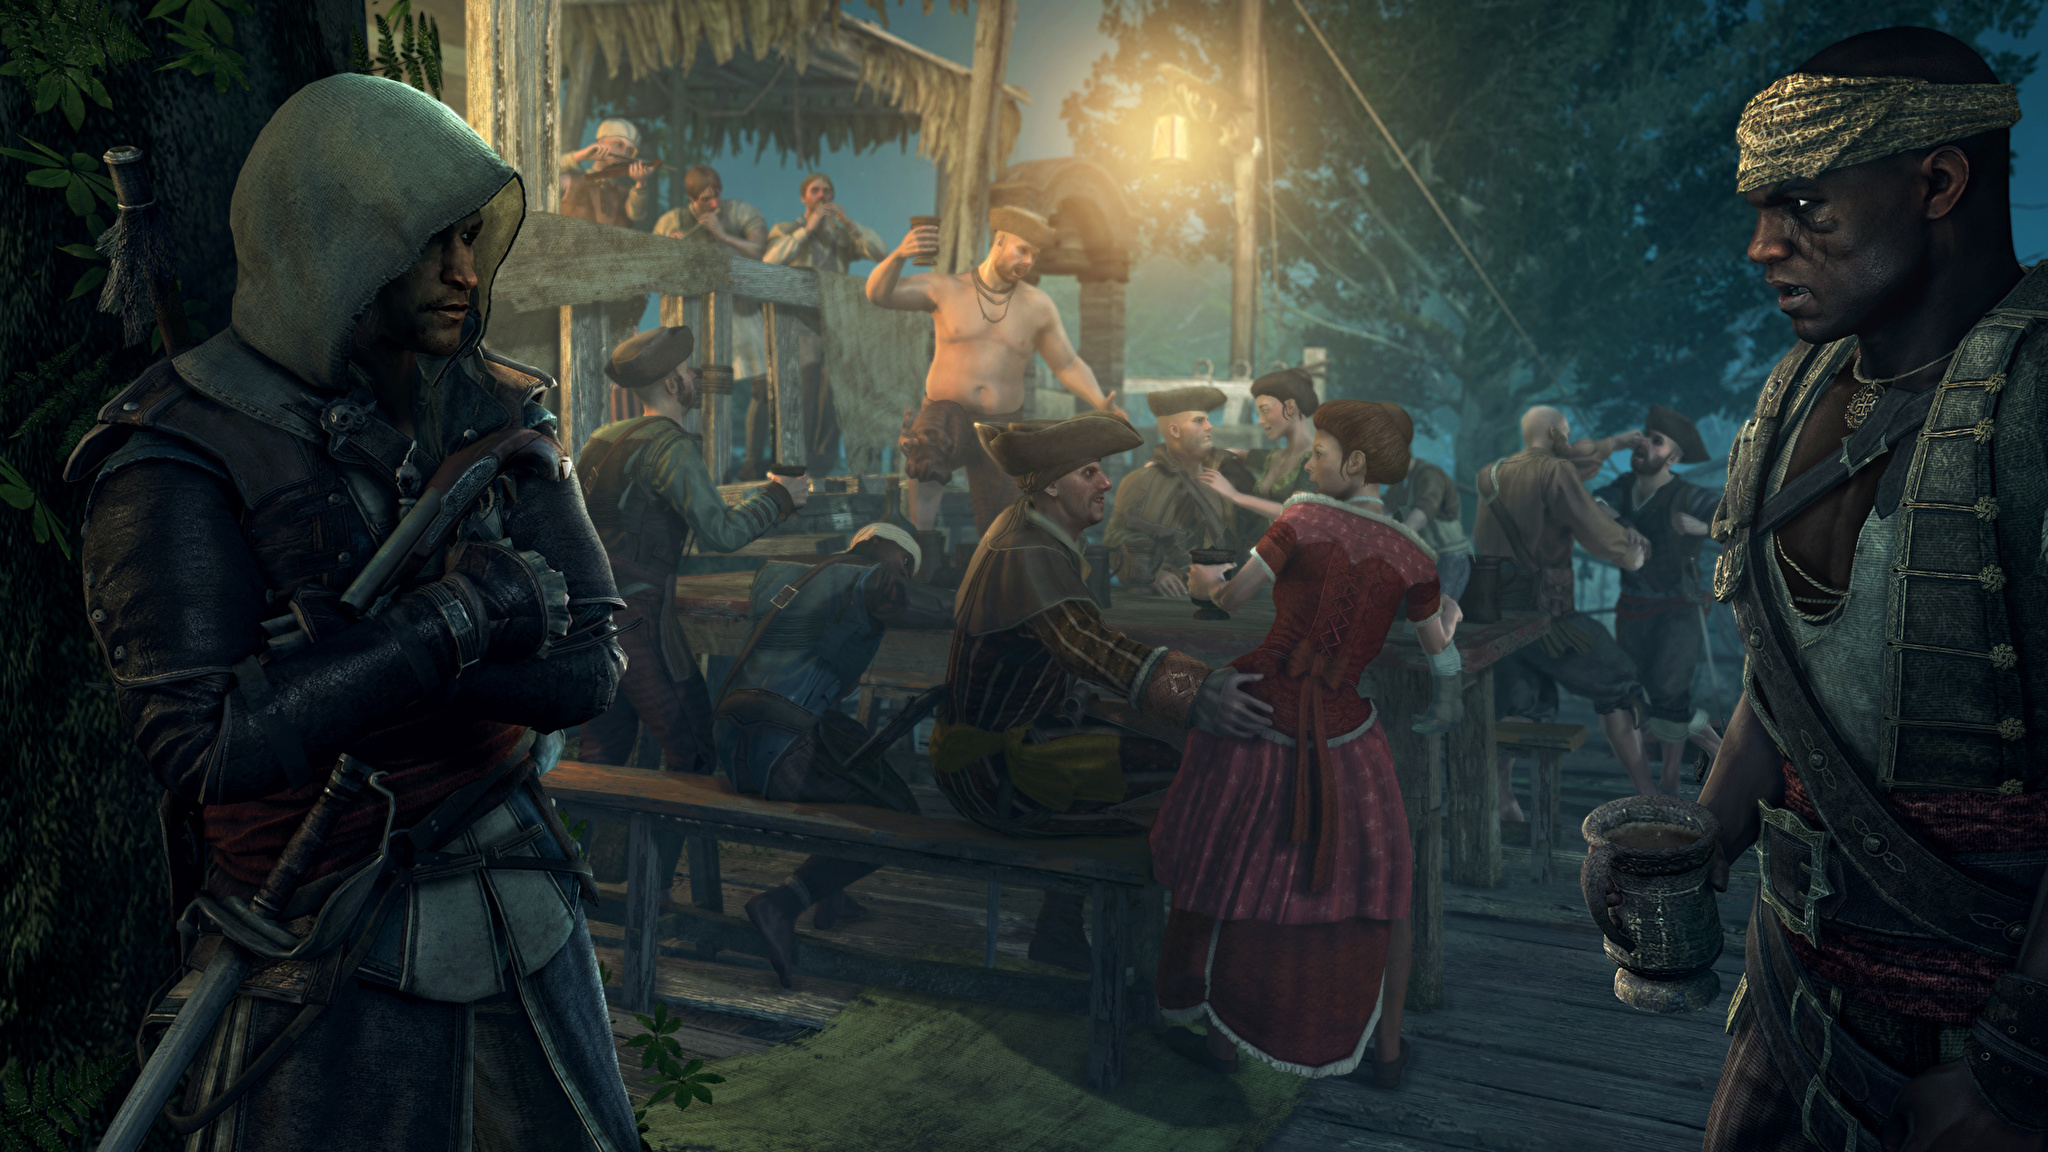 Assassins Creed 4 Multiplayer Male wallpaper 2048x1152